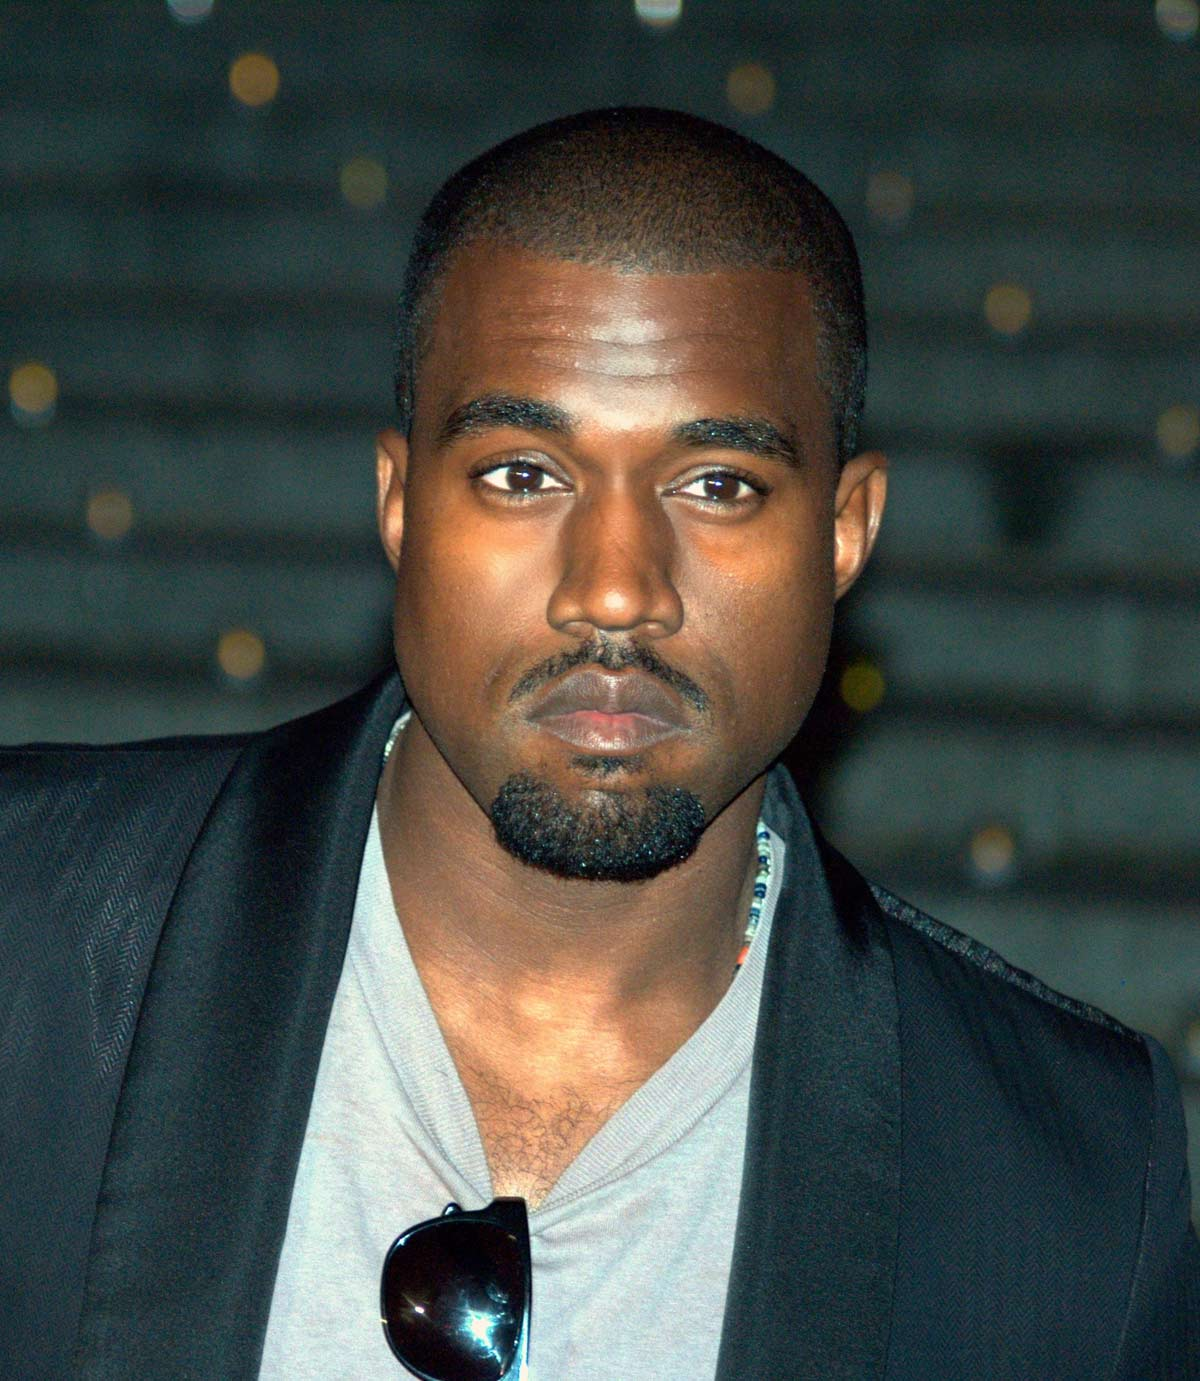 24-year old college grad could cash in big time with Kanye West running for president